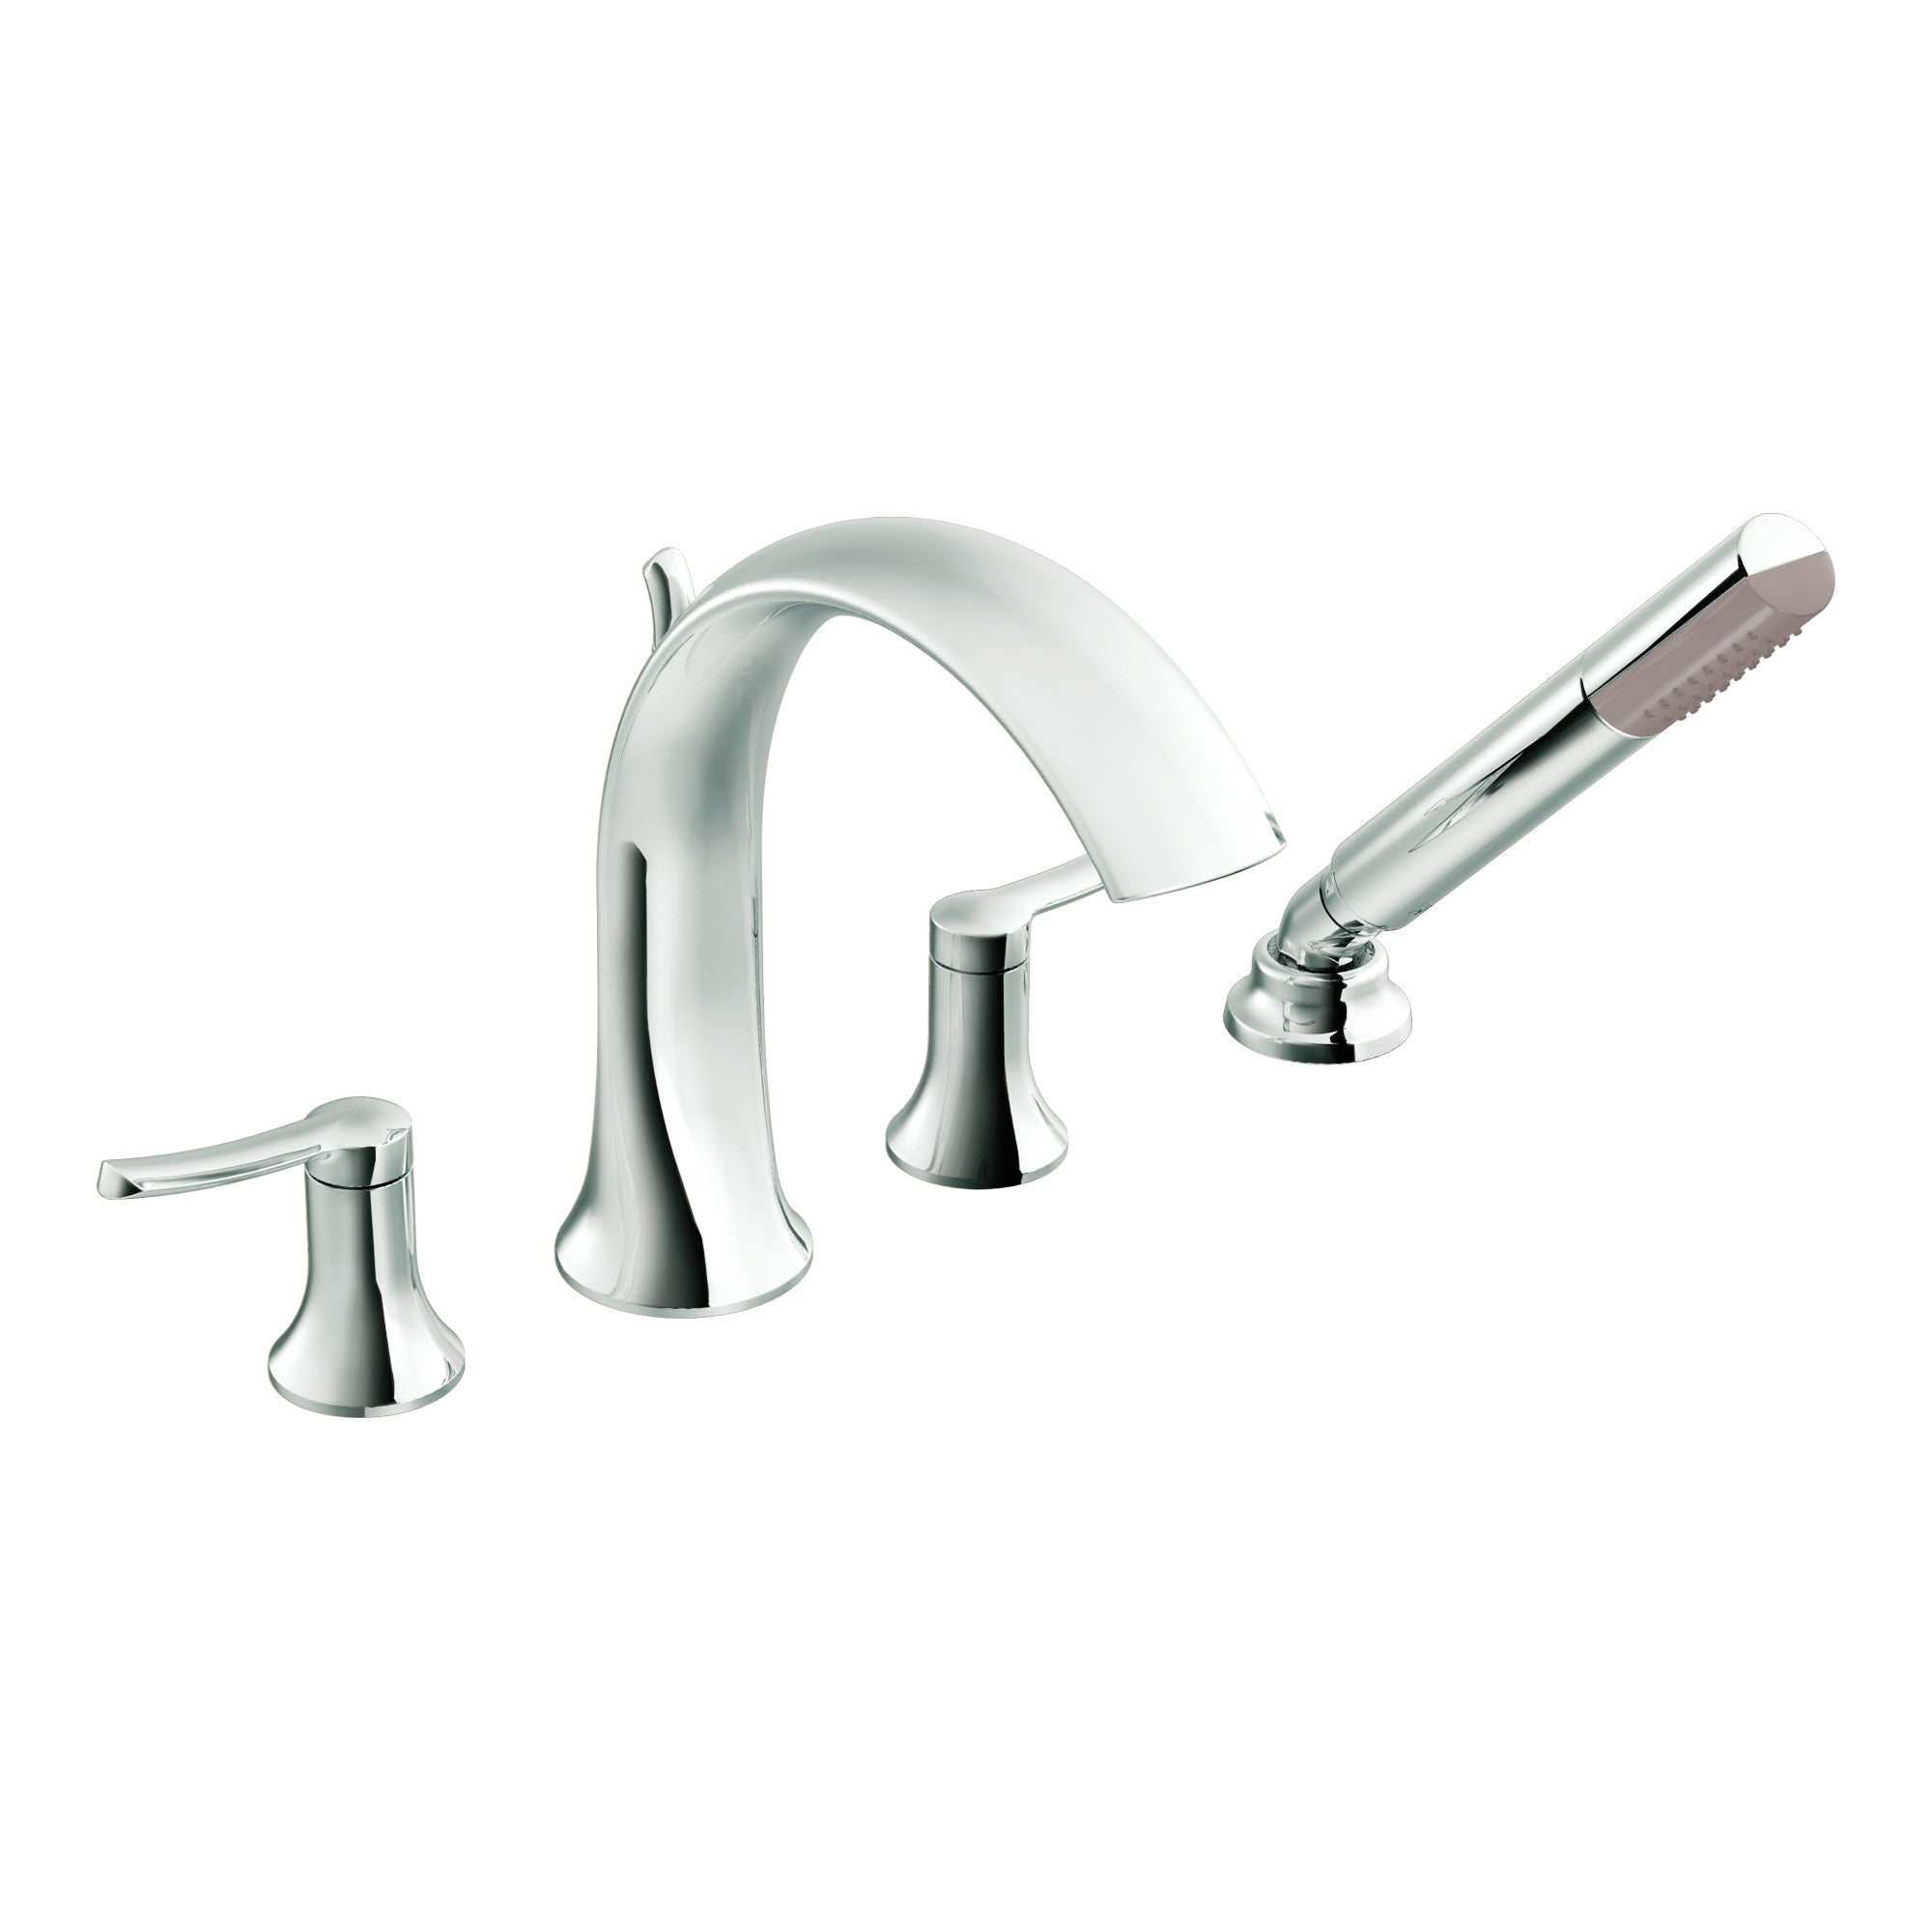 Moen Chrome Two-handle High-arc Faucet